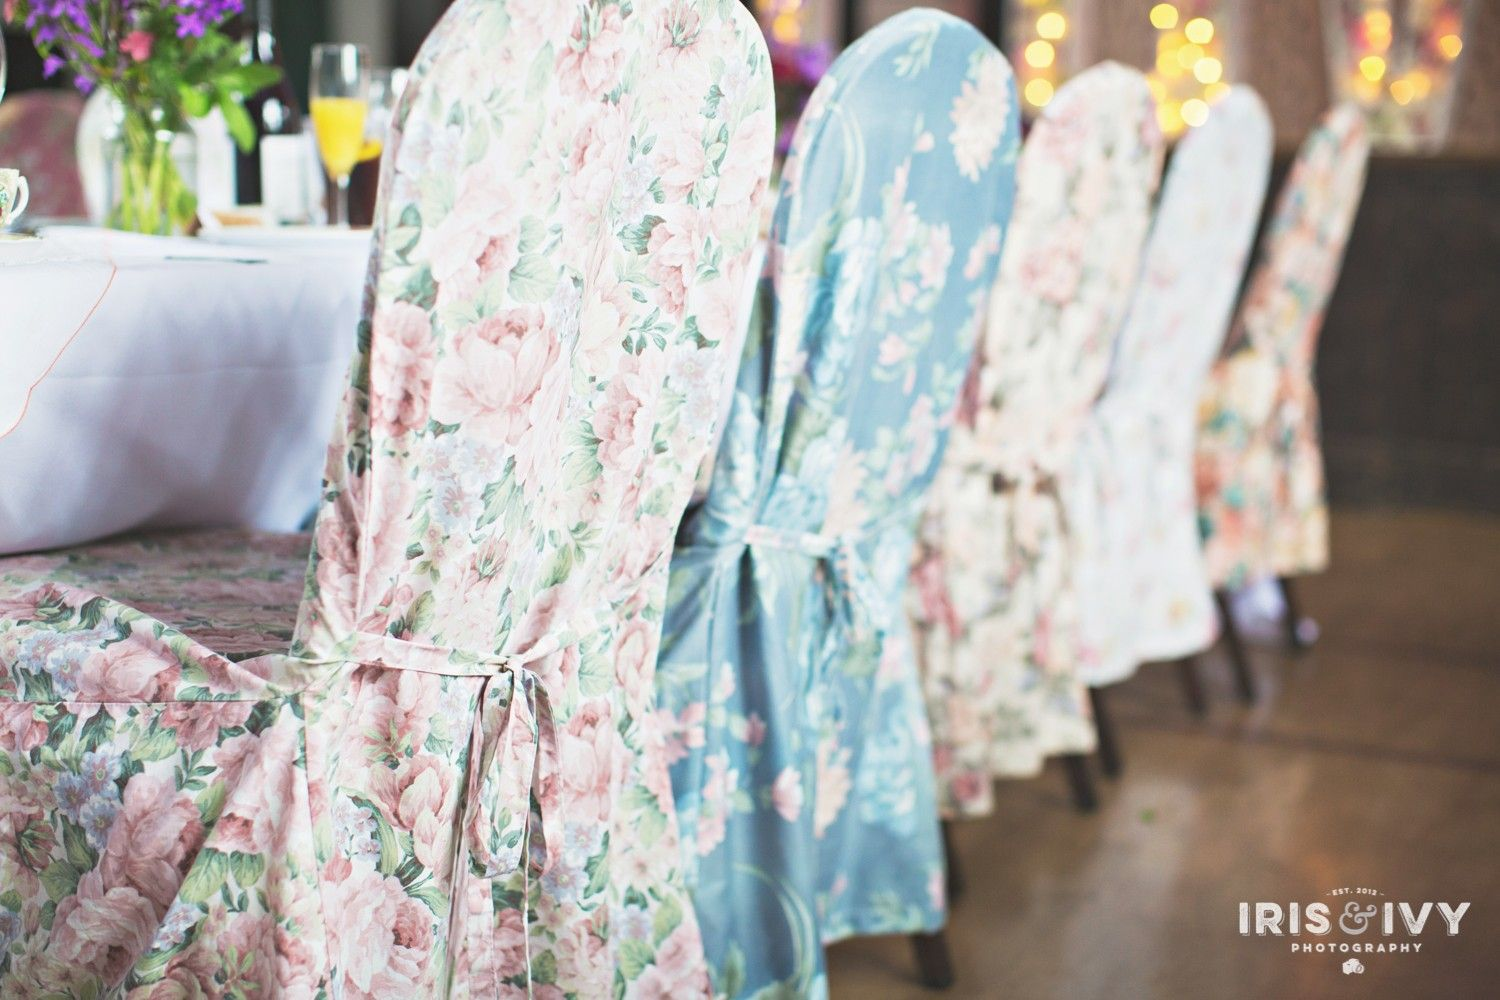 Wedding Chair Covers Hire East Sussex Belmont Salon Betty Loves Vintage Our Floral Perfect For Tea Party